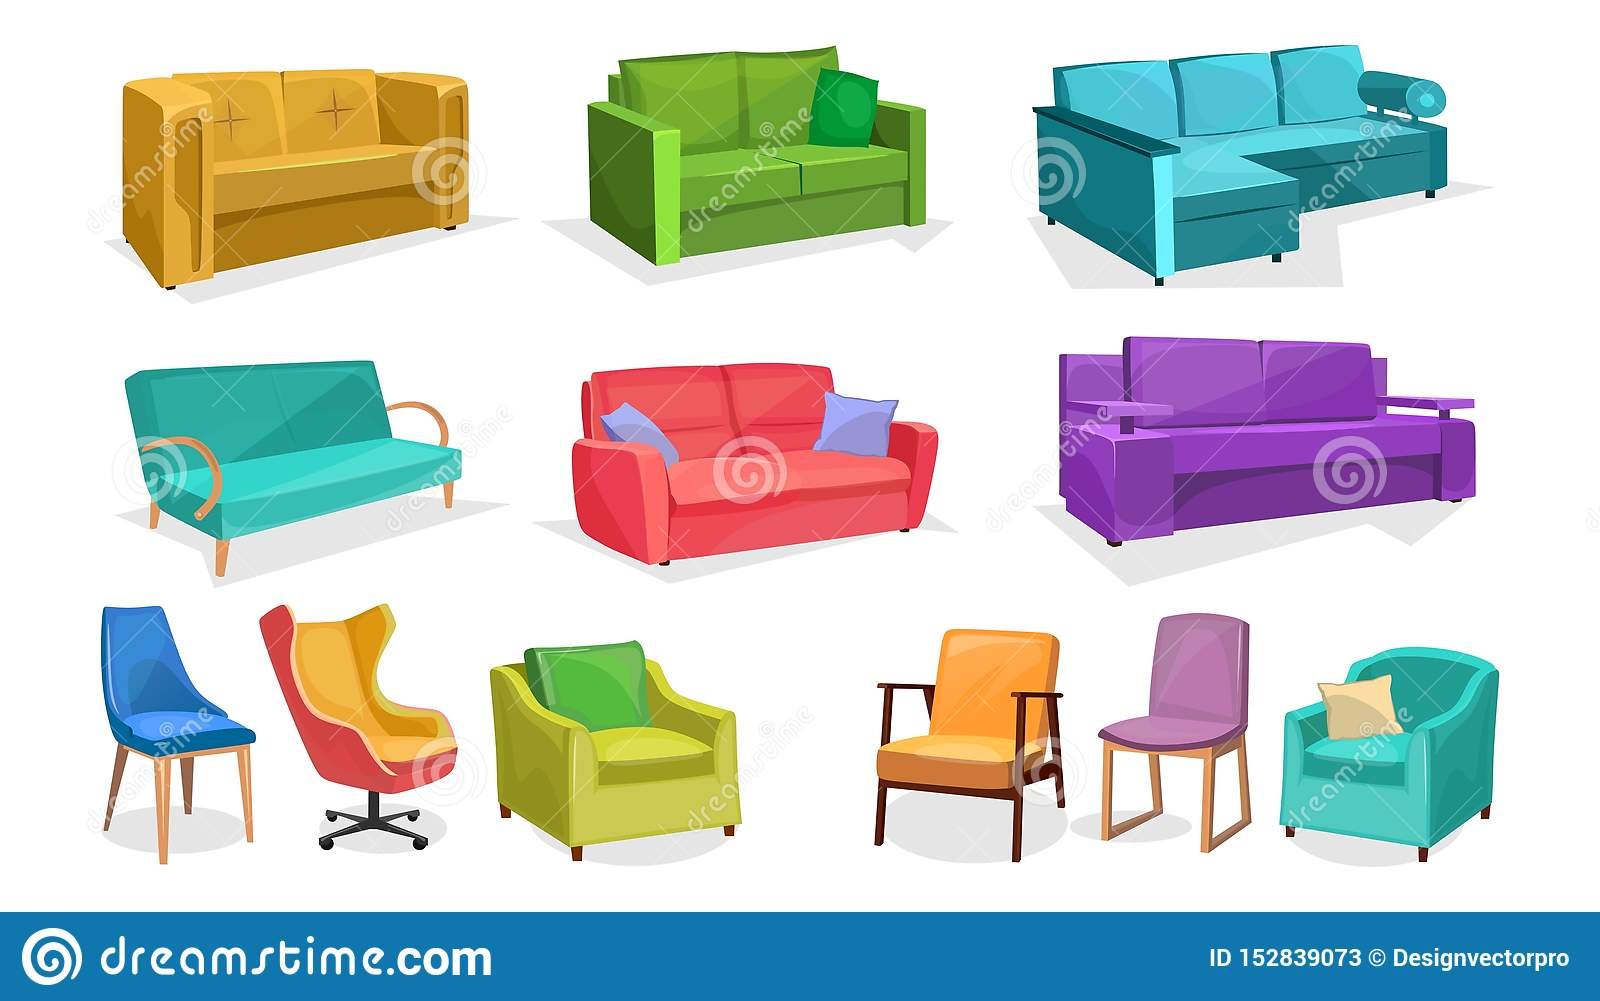 Home Or Office Furniture In Cartoon Style Isolated On White Background Vector Sofas Armchairs And Chairs Set Home Interior Stock Vector Illustration Of Game Fabric 152839073